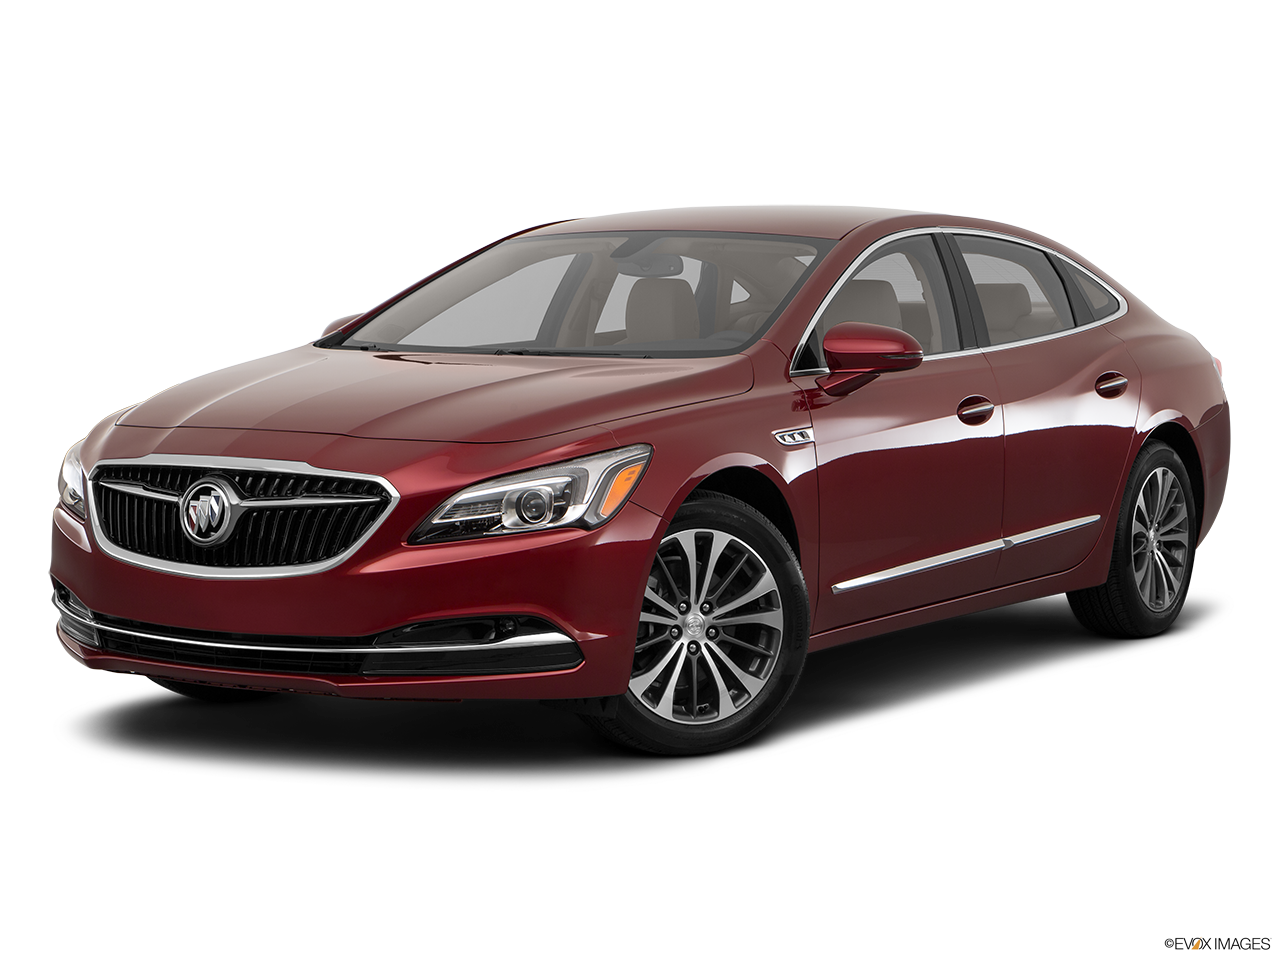 Test Drive A 2017 Buick LaCrosse at Suburban Buick GMC of Costa Mesa in Costa Mesa